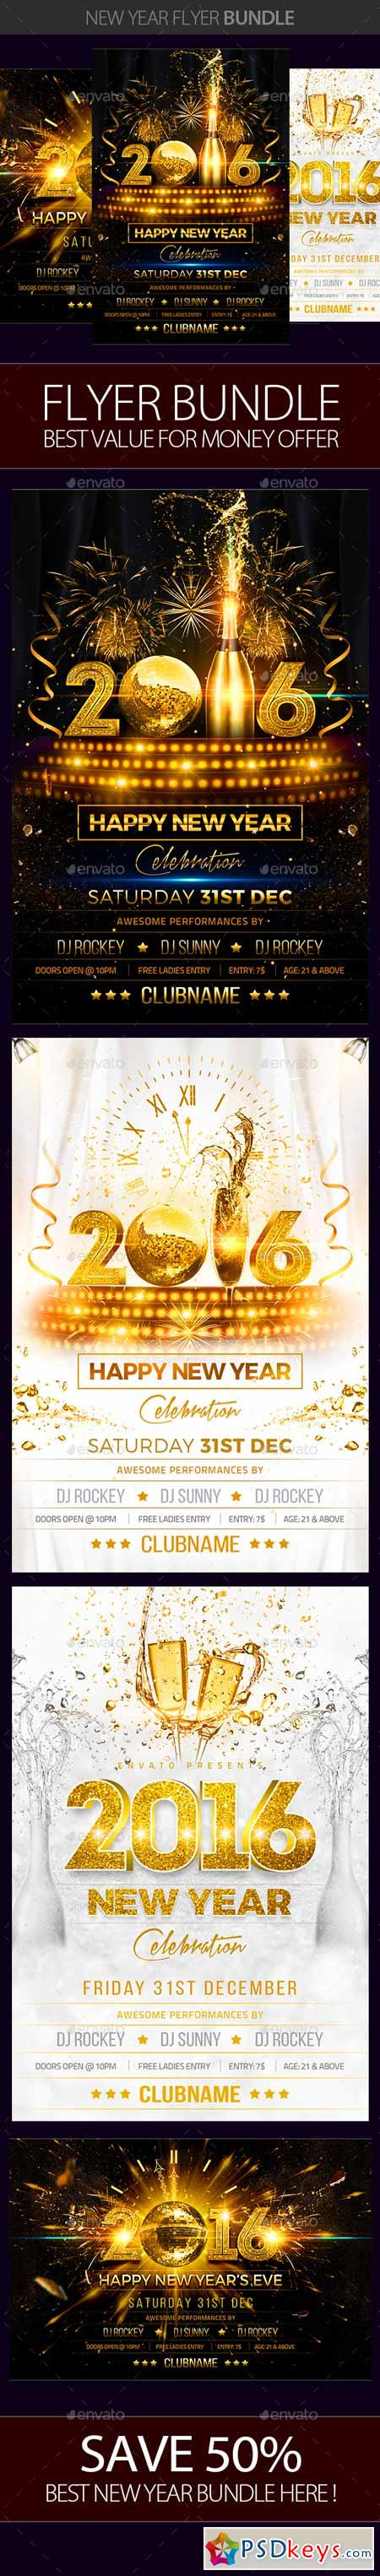 New Year Party Flyer Bundle 13933153